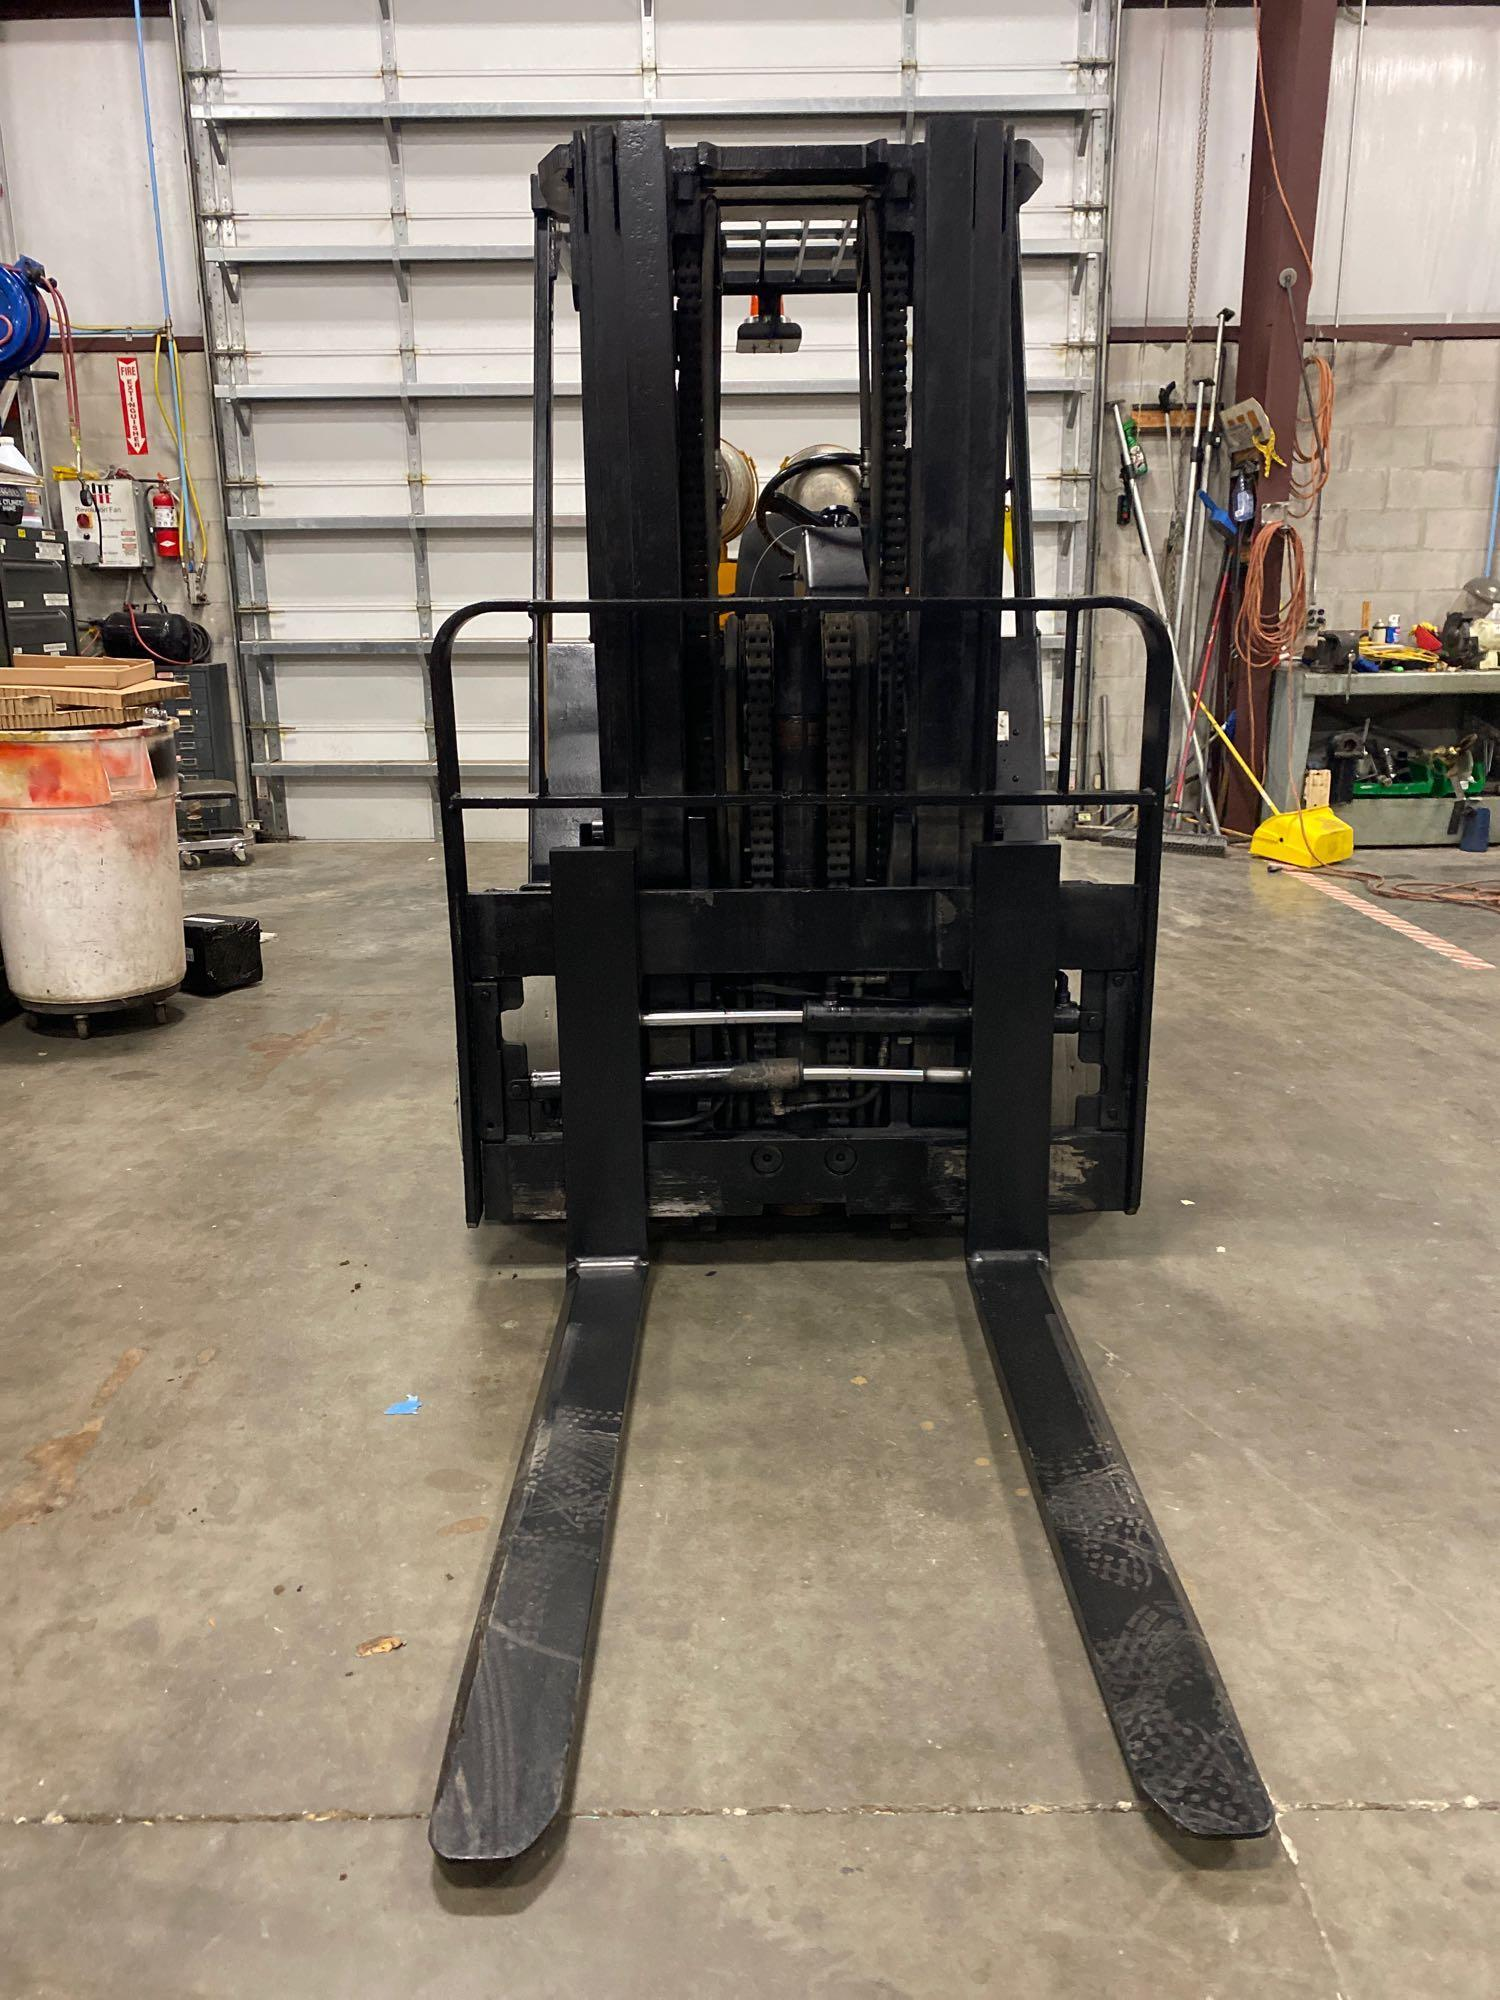 YALE LP FORKLIFT MODEL CLC120, APPROX. 12,000 LB CAPACITY, TILT, SIDE SHIFT, RUNS AND OPERATES - Image 3 of 10